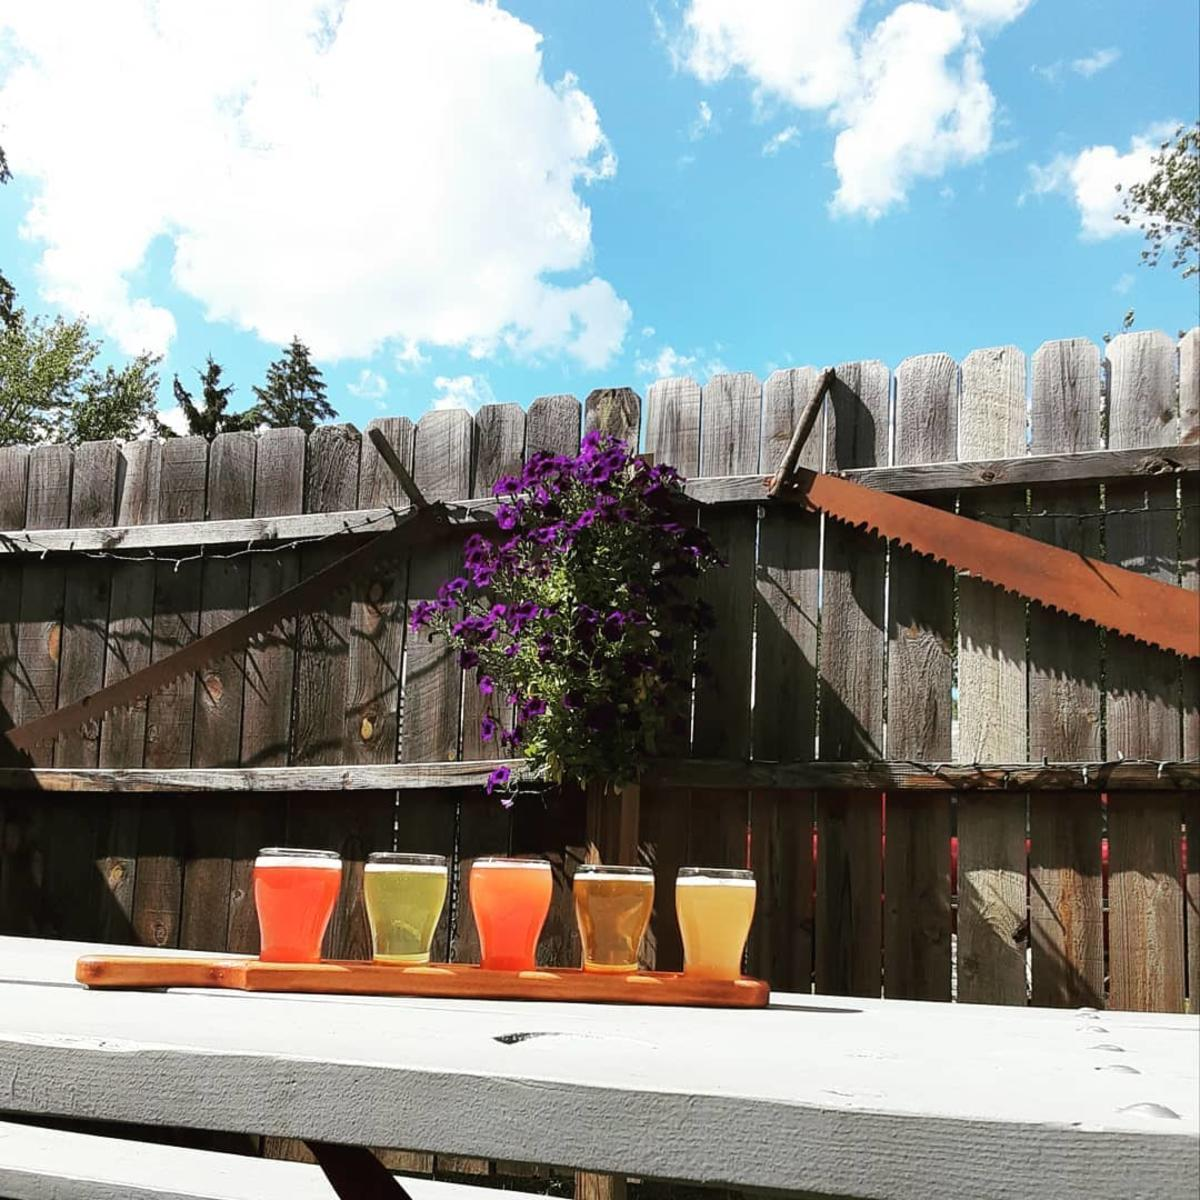 Summery beer flight served on the back patio of Loggers Brewing Company in Shields